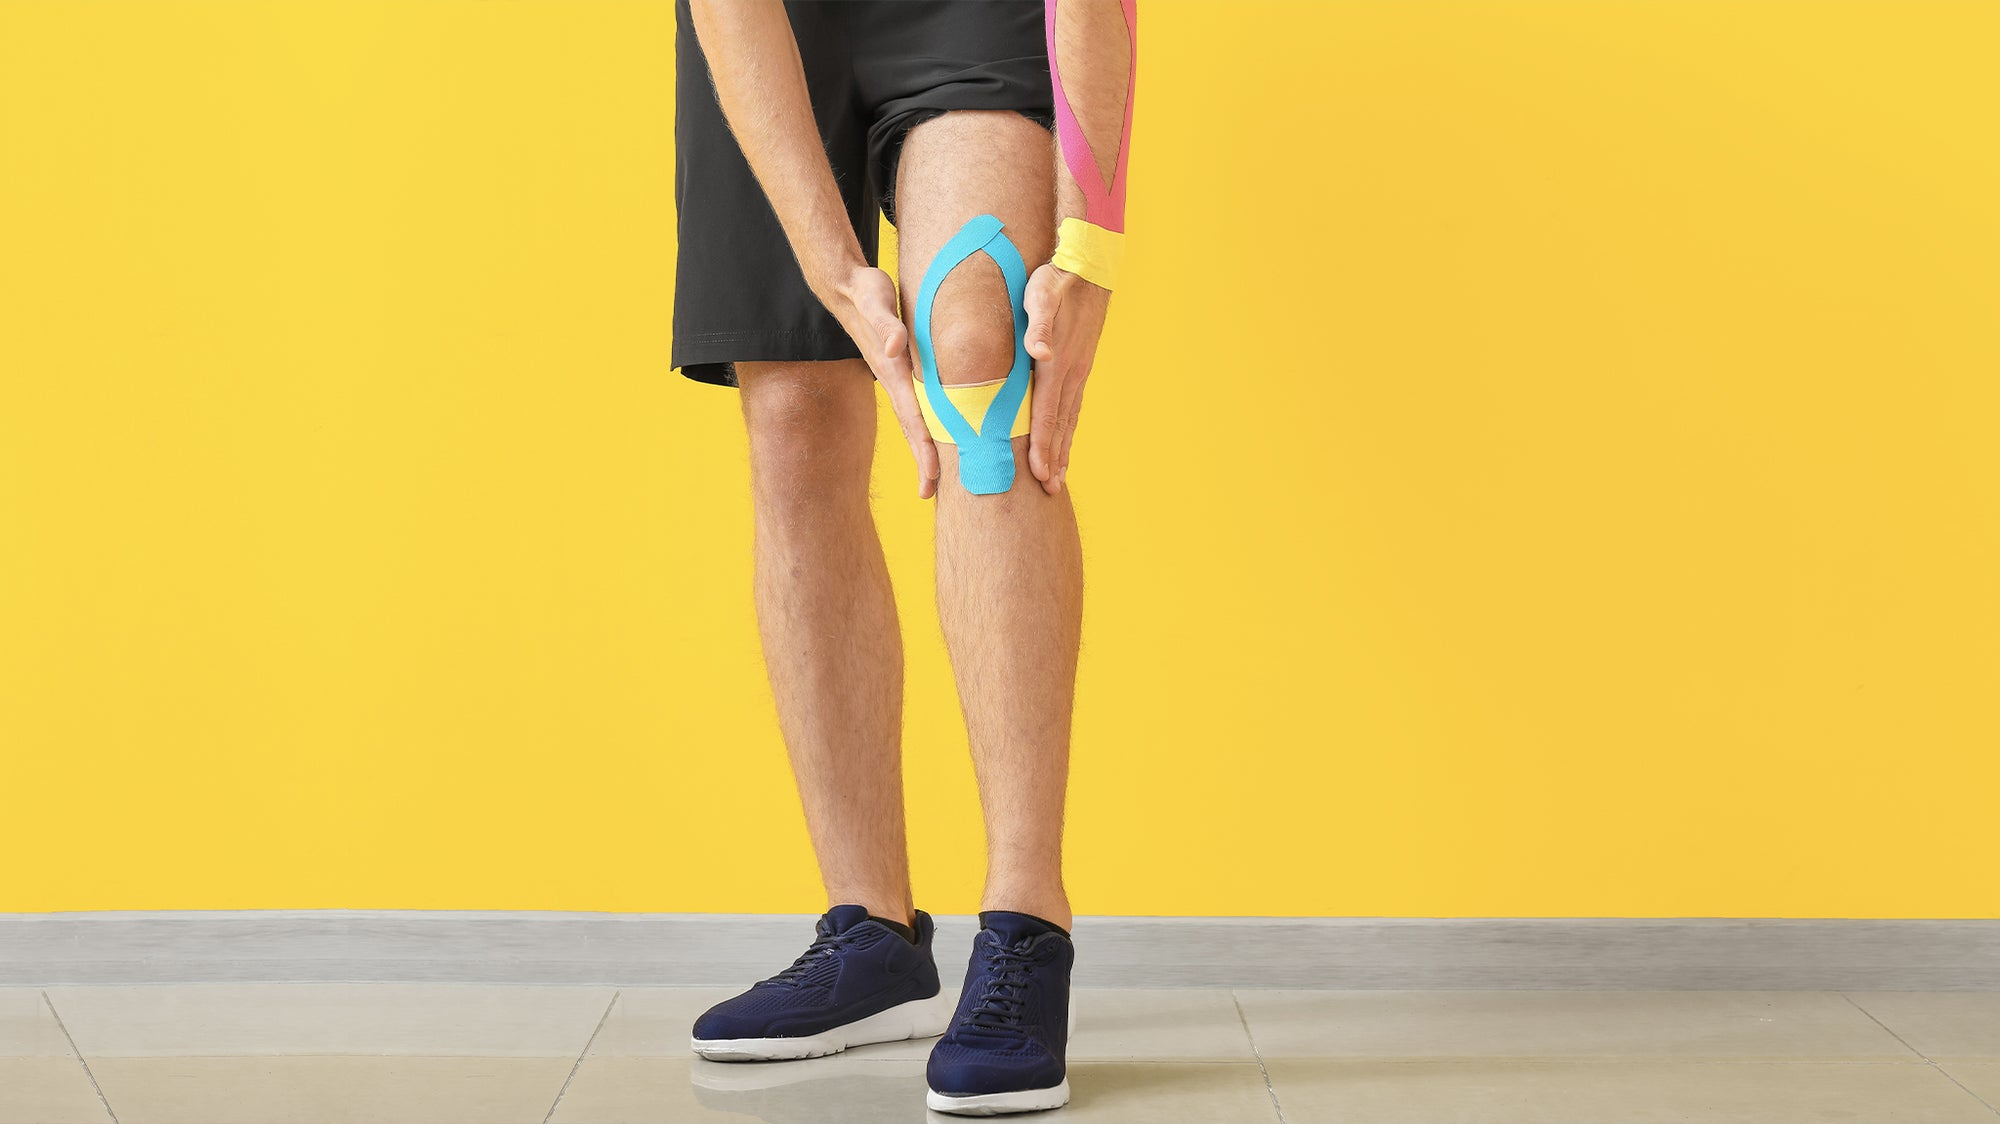 Best Home Remedies to Get Rid of Chronic Knee Pain